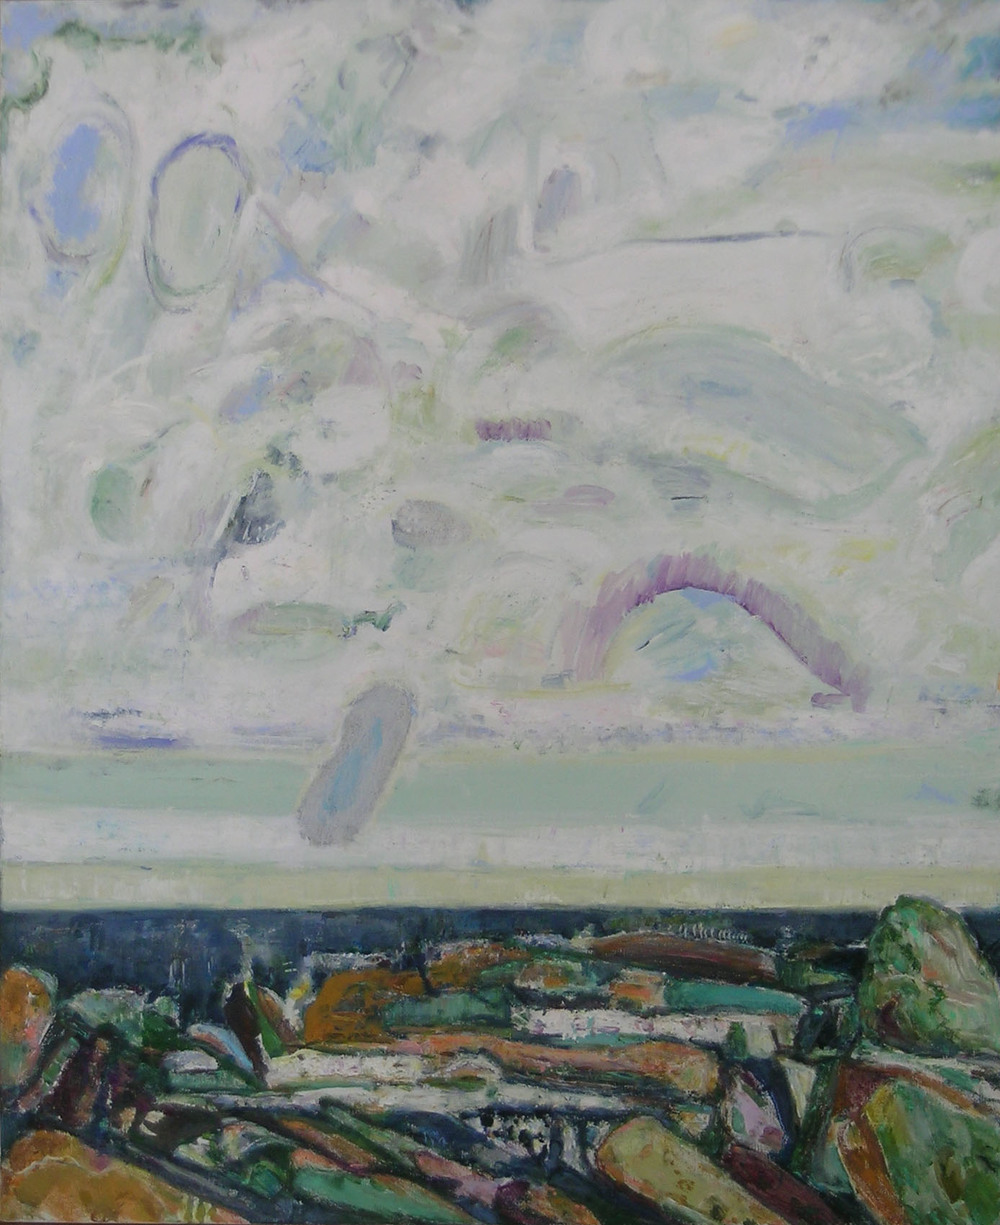 Morning Message,  2005 oil on canvas, 44 x 36 inches